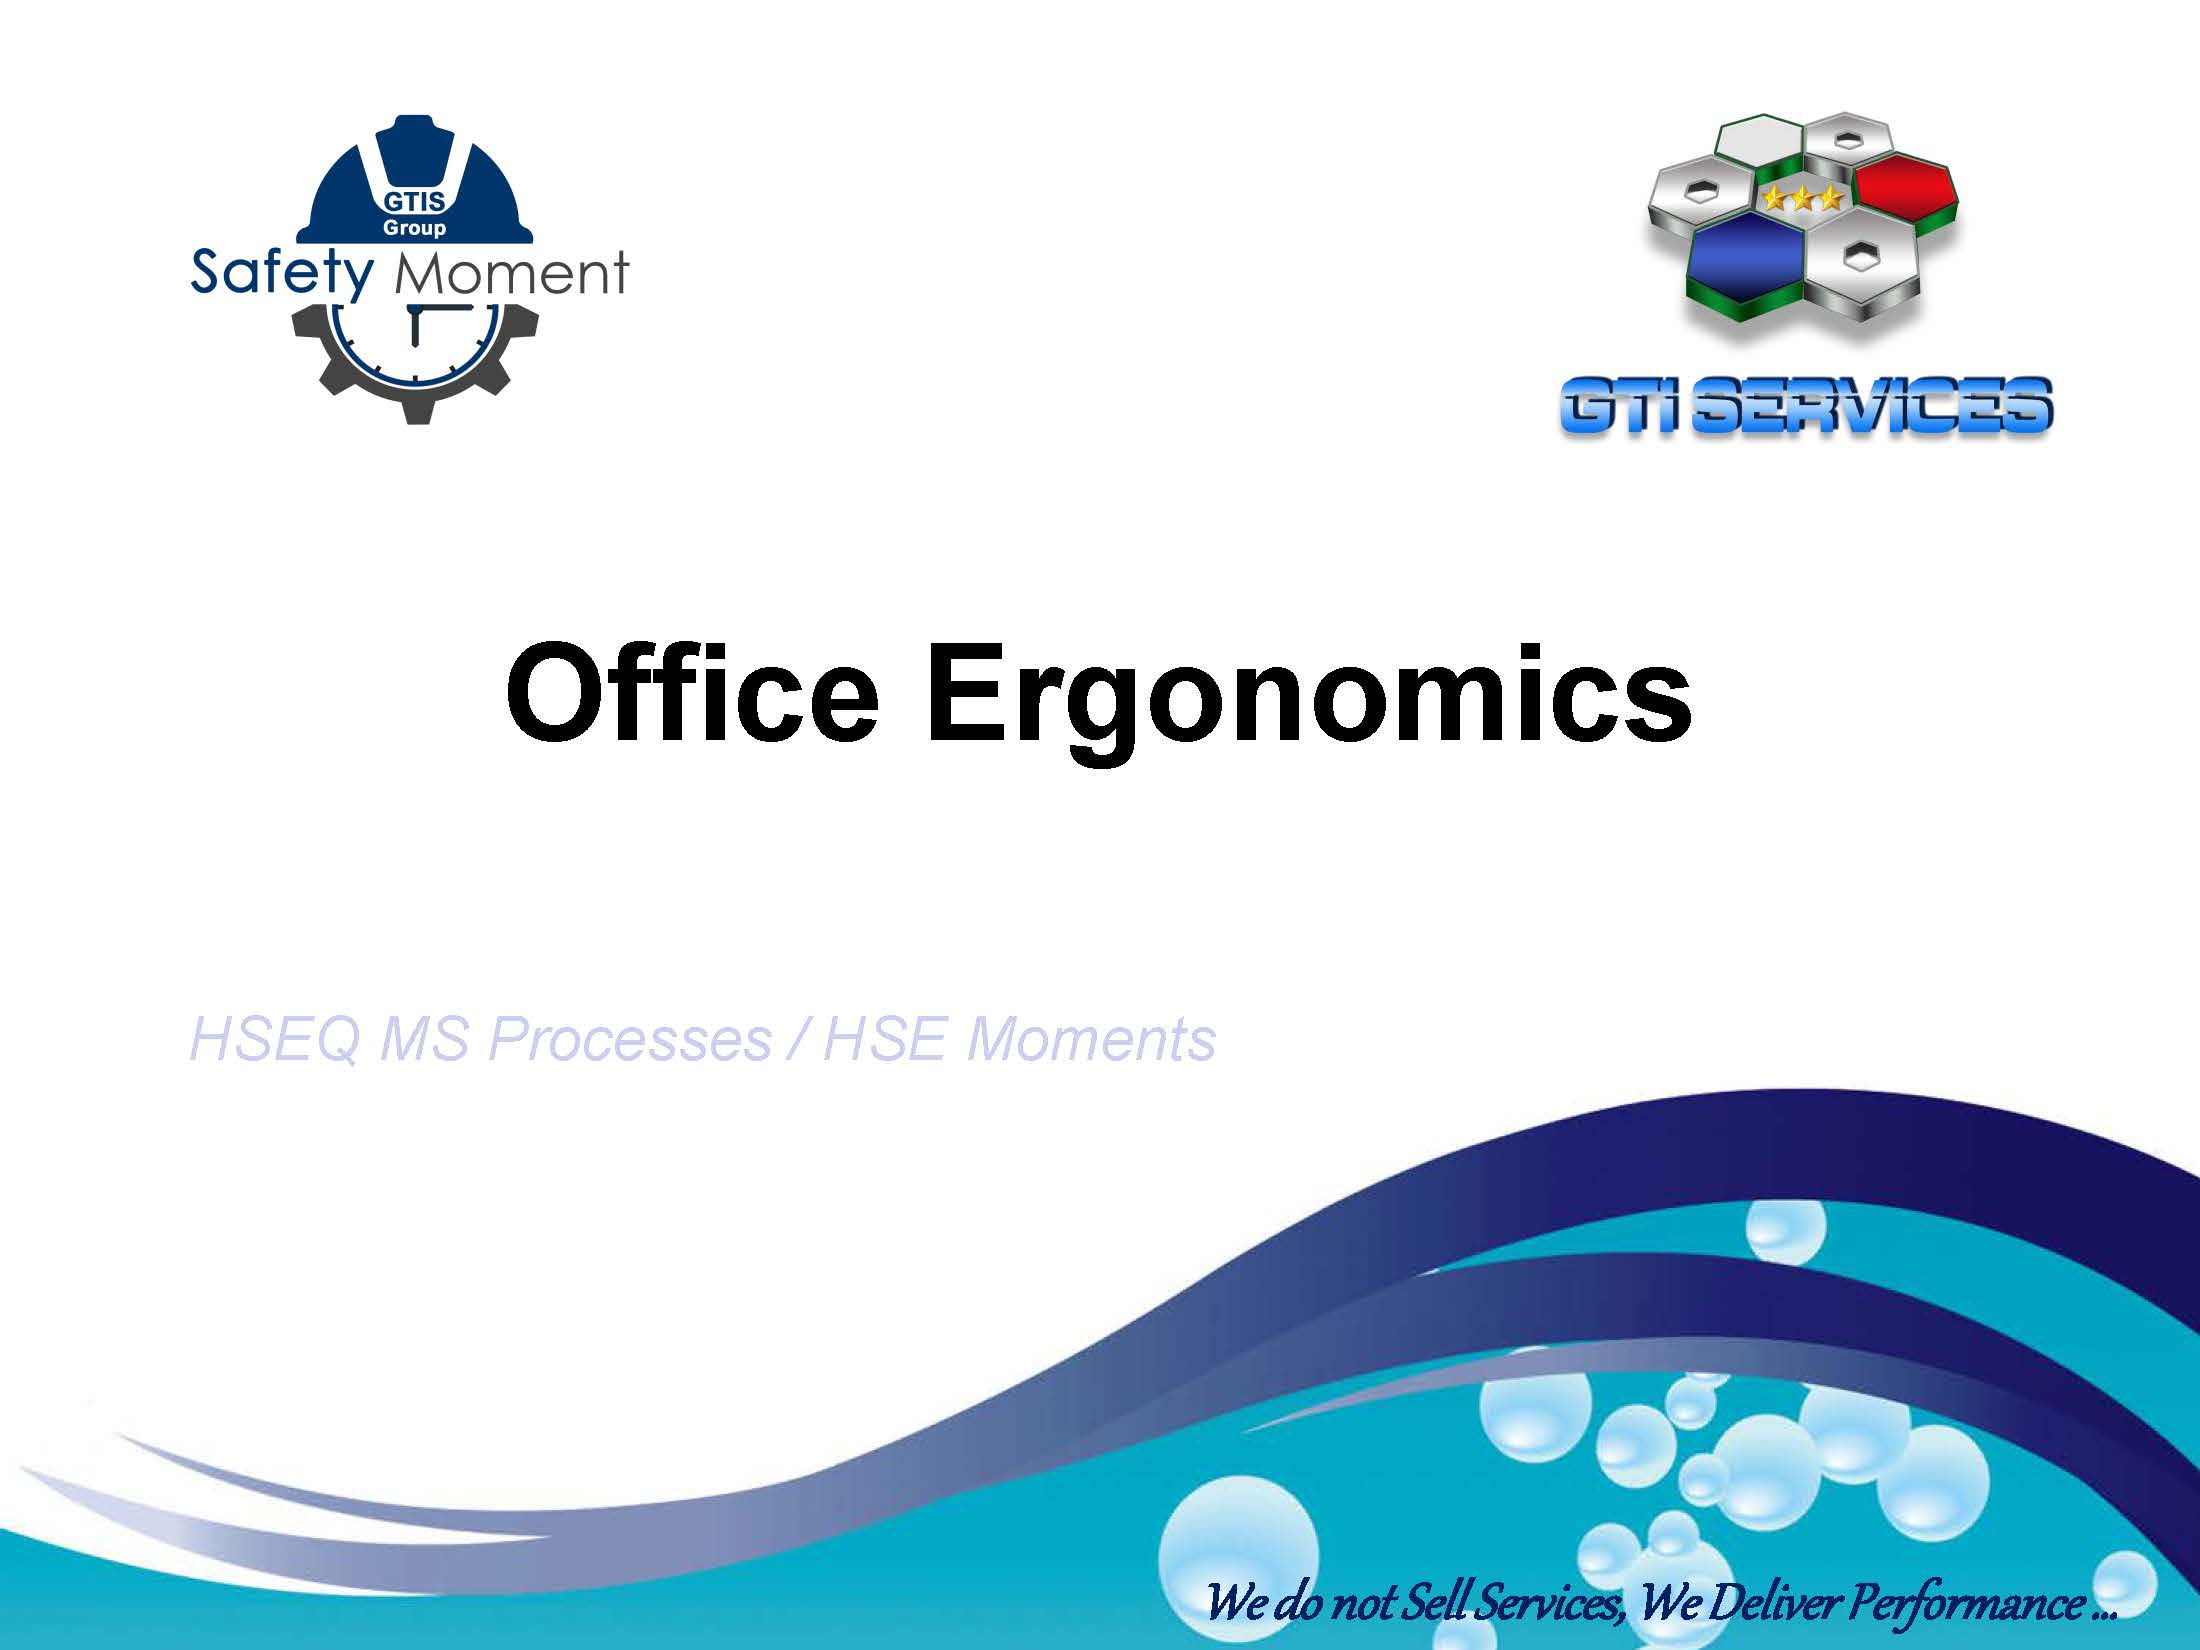 20200110 - Safety Moment - Office Ergonomics_Page_1